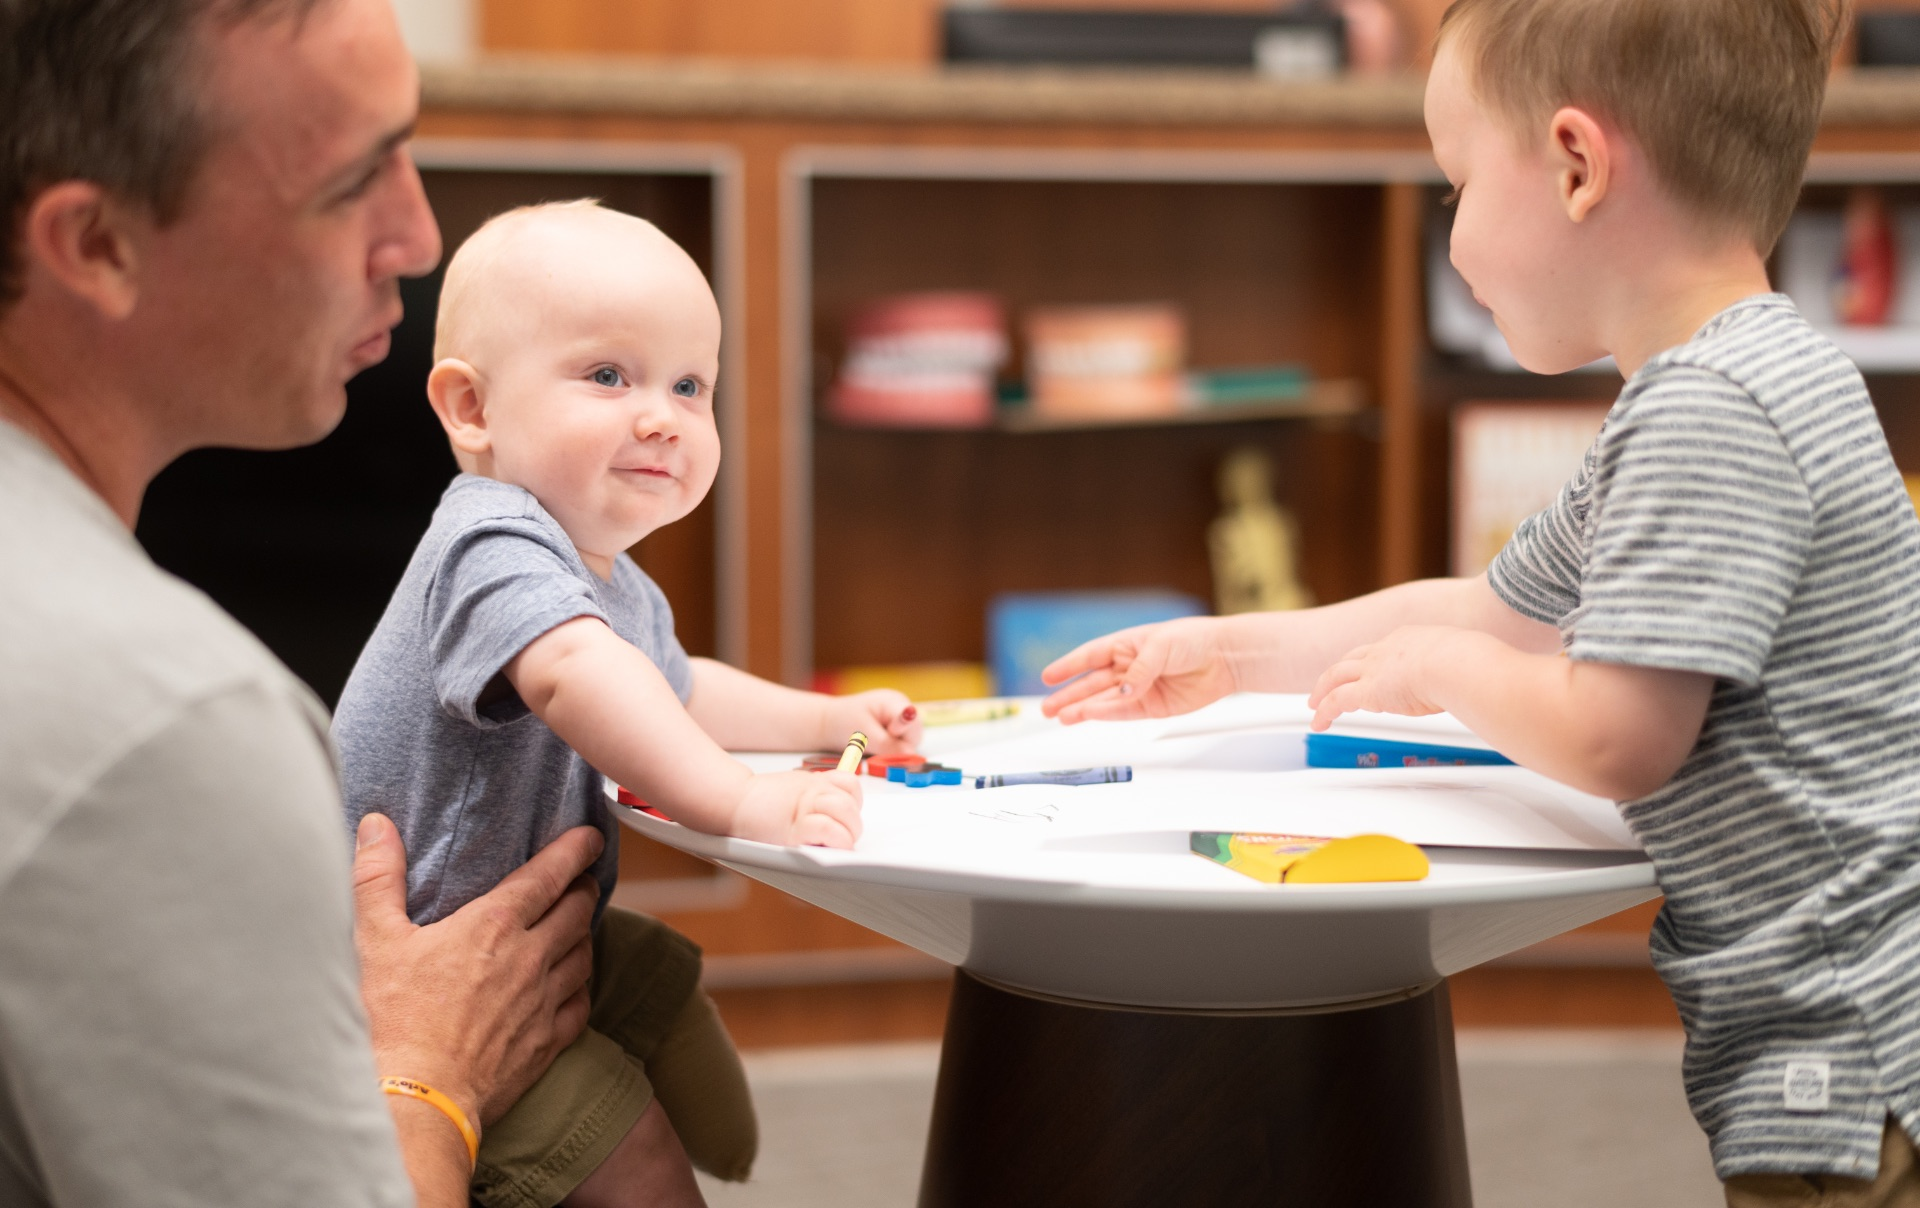 Tyler Yost holds his son Arlo while he's coloring alongside his older brother Ezra, who is a brunette white toddler that is wearing a grey and white striped shirt.